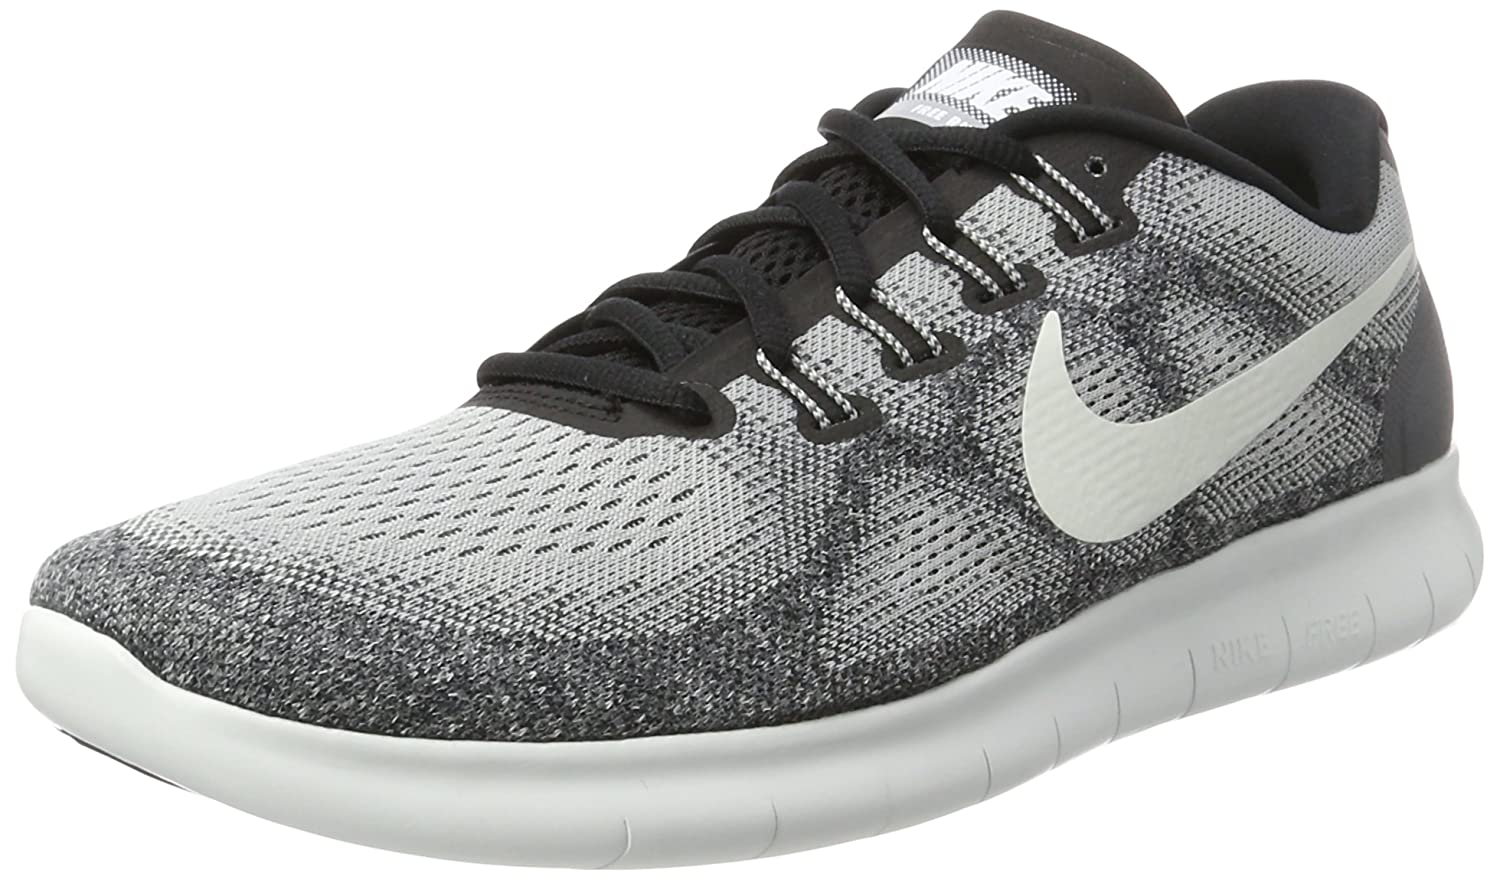 NIKE Men's Free RN Running Shoe B07BKBJ4TW 8 D(M) US|Wolf Grey/Off White/Pure Platinum/Black